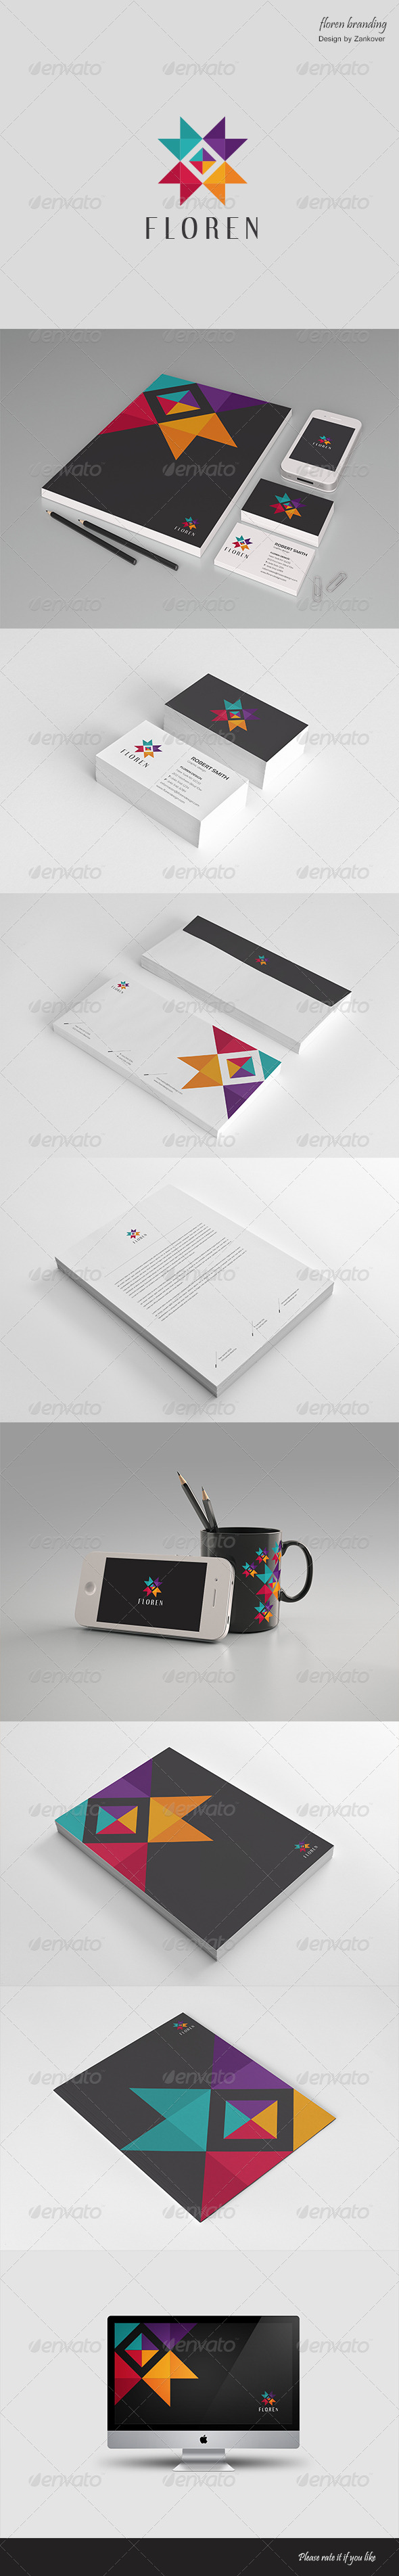 GraphicRiver Stationary & Brand Identity Floren 4702021